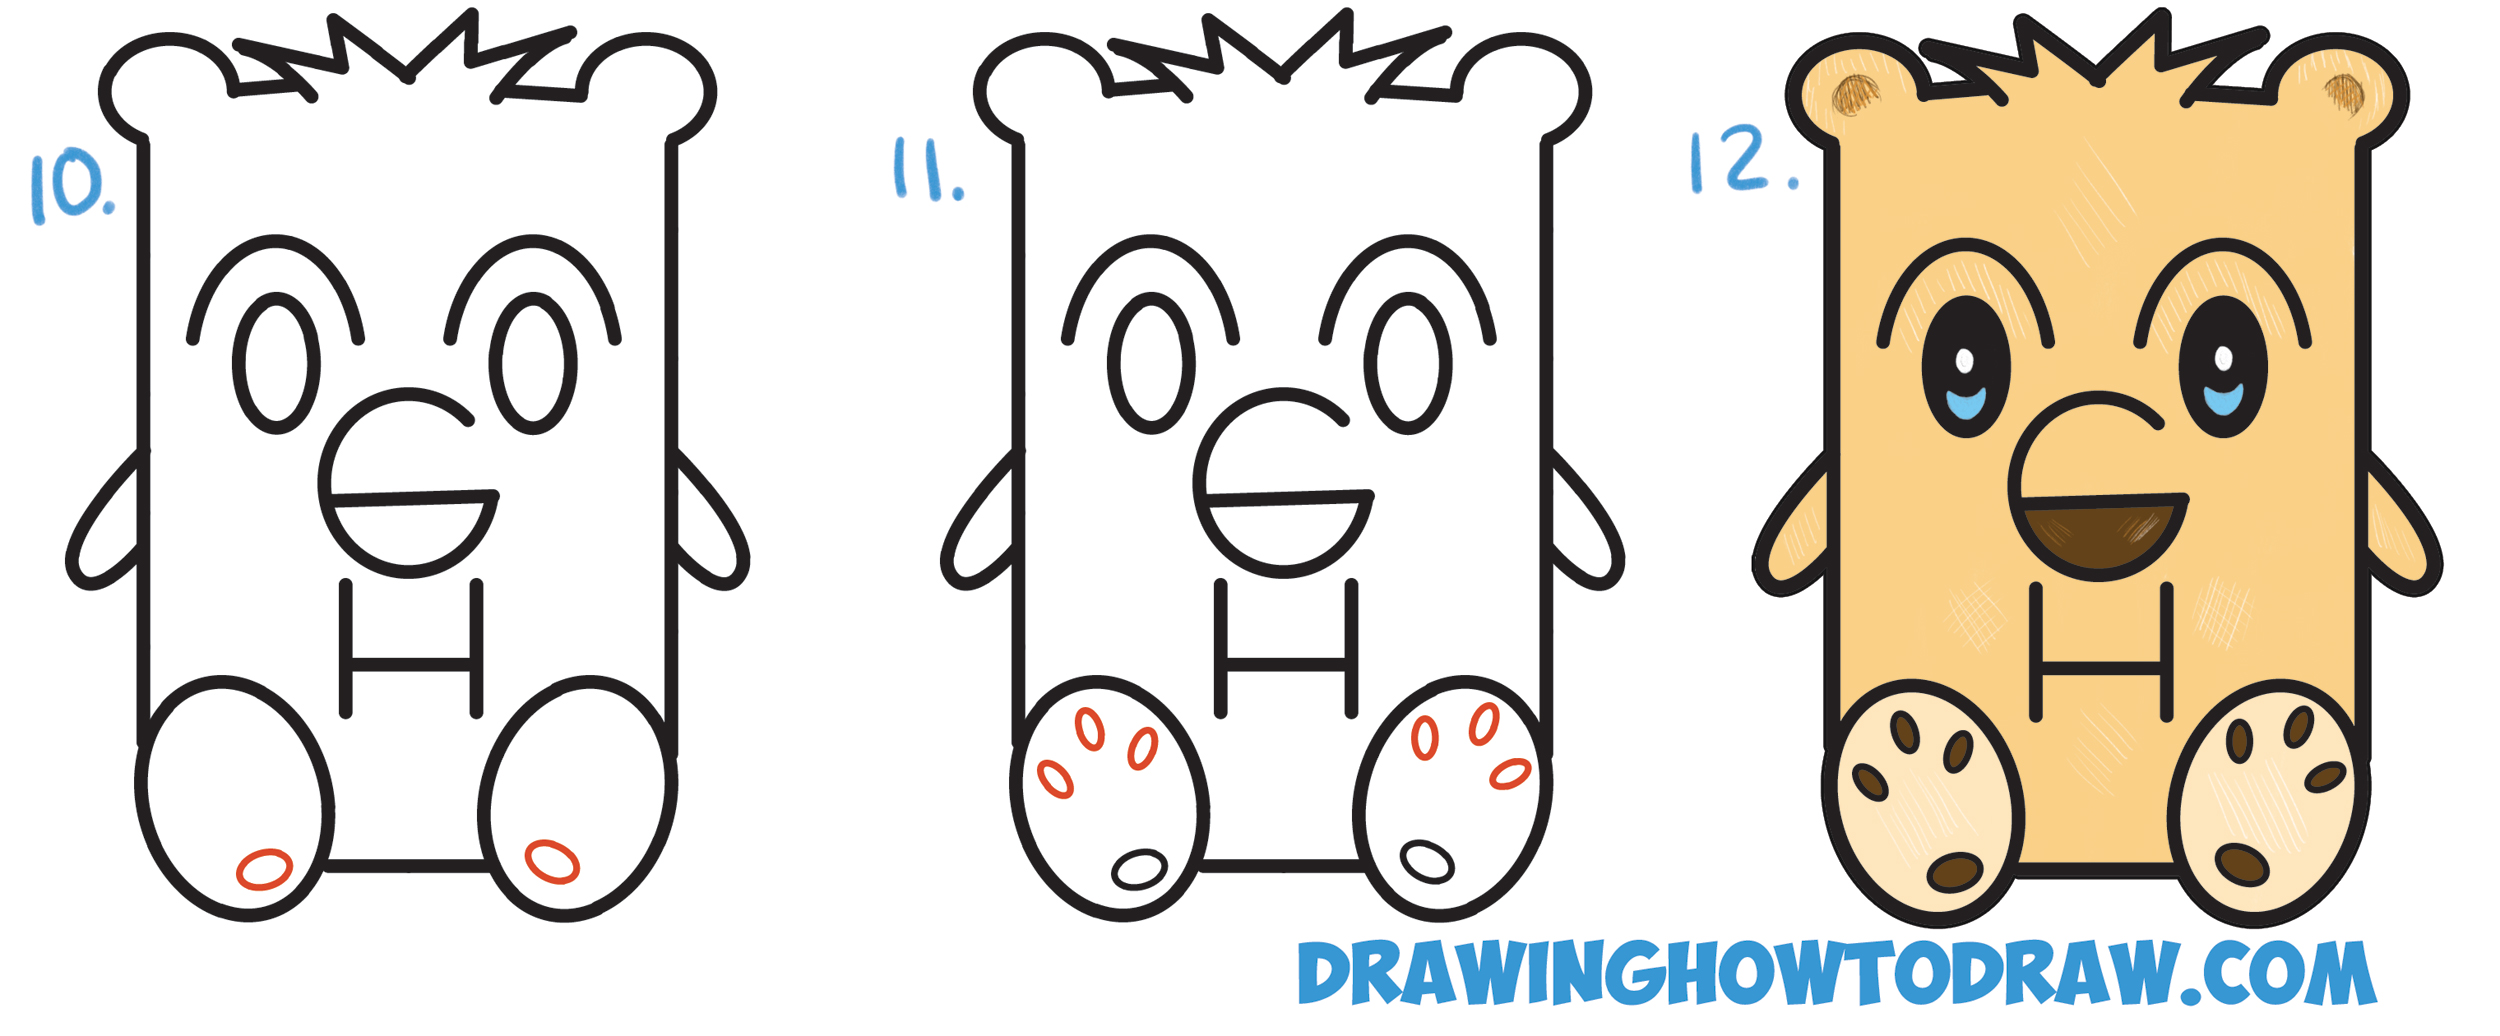 "Learn How to Draw a Cartoon Bear from Letters ""GH"" Simple Steps Drawing Lesson for Children and Beginners"